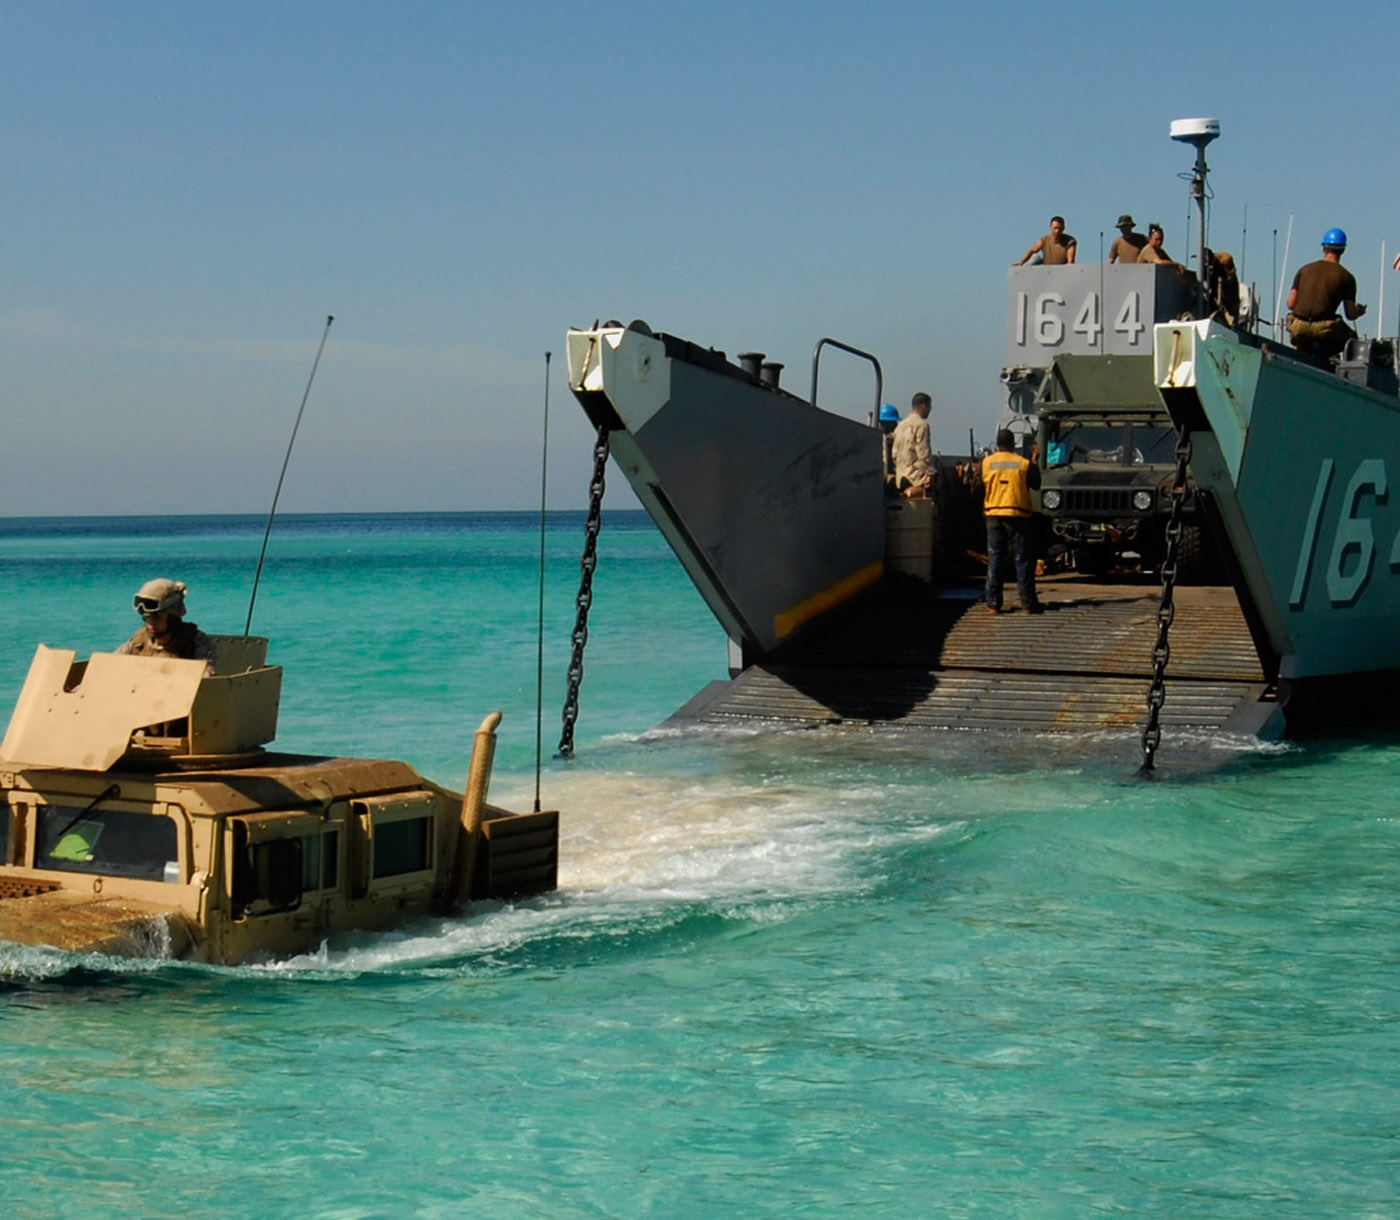 A Marine drives a Humvee into shallow, blue ocean water.